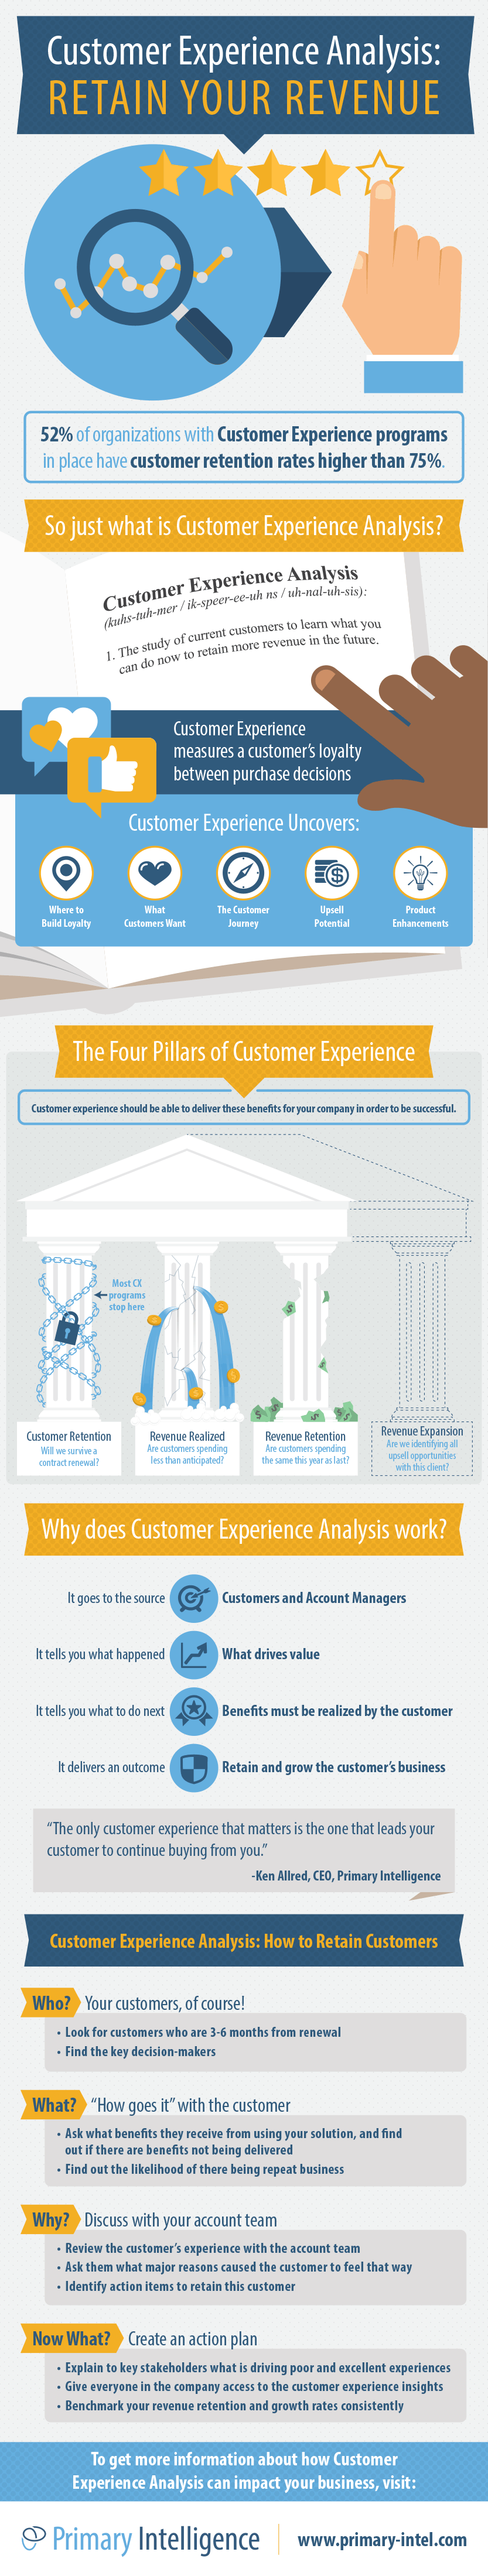 PI-Customer_Experience_Analysis-Infographic